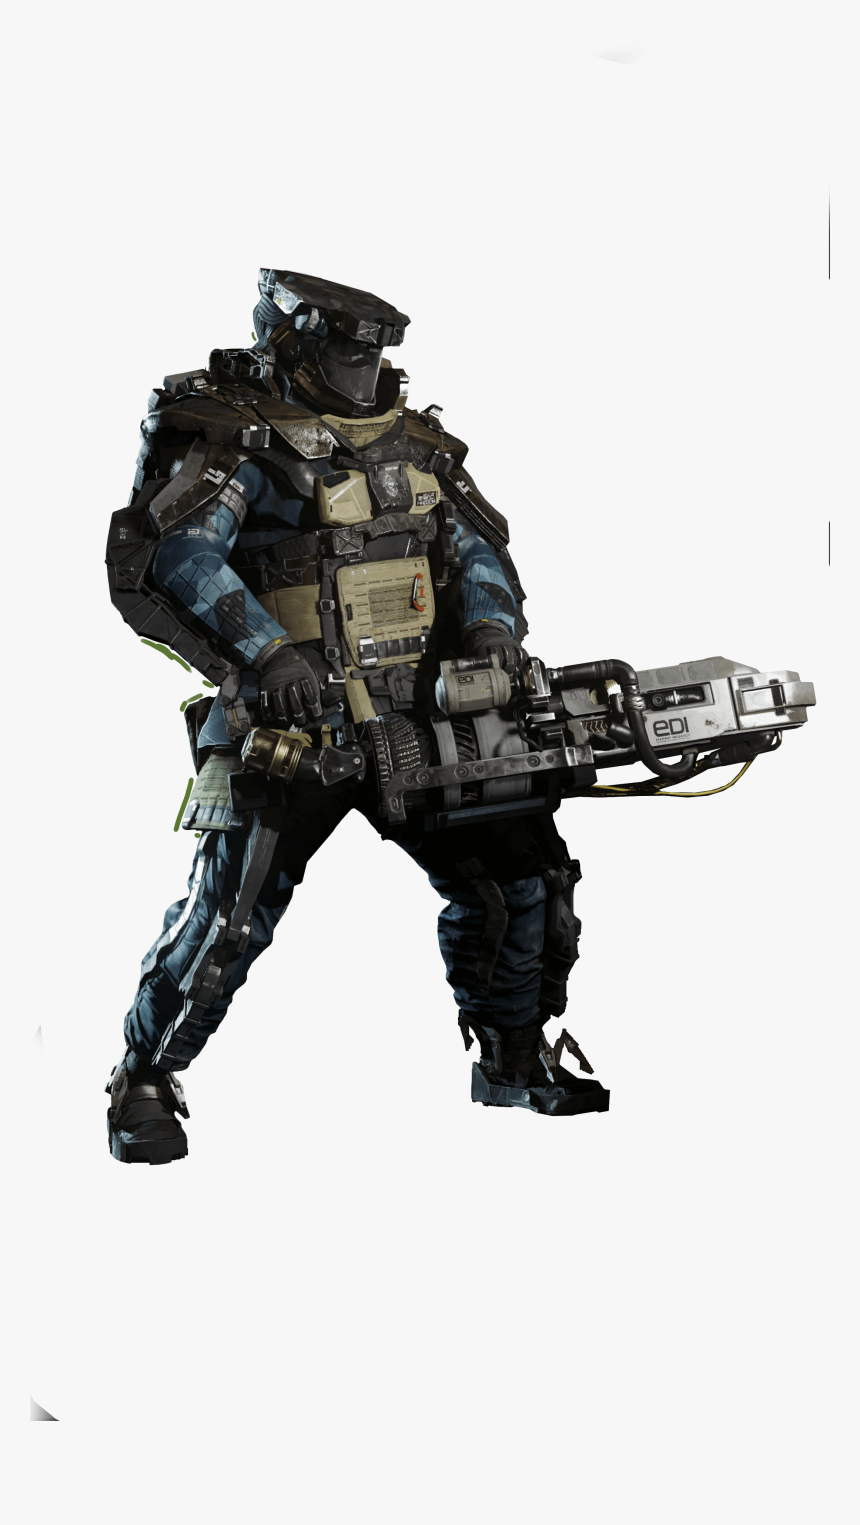 Bo3 Zombies Png, Transparent Png, Free Download